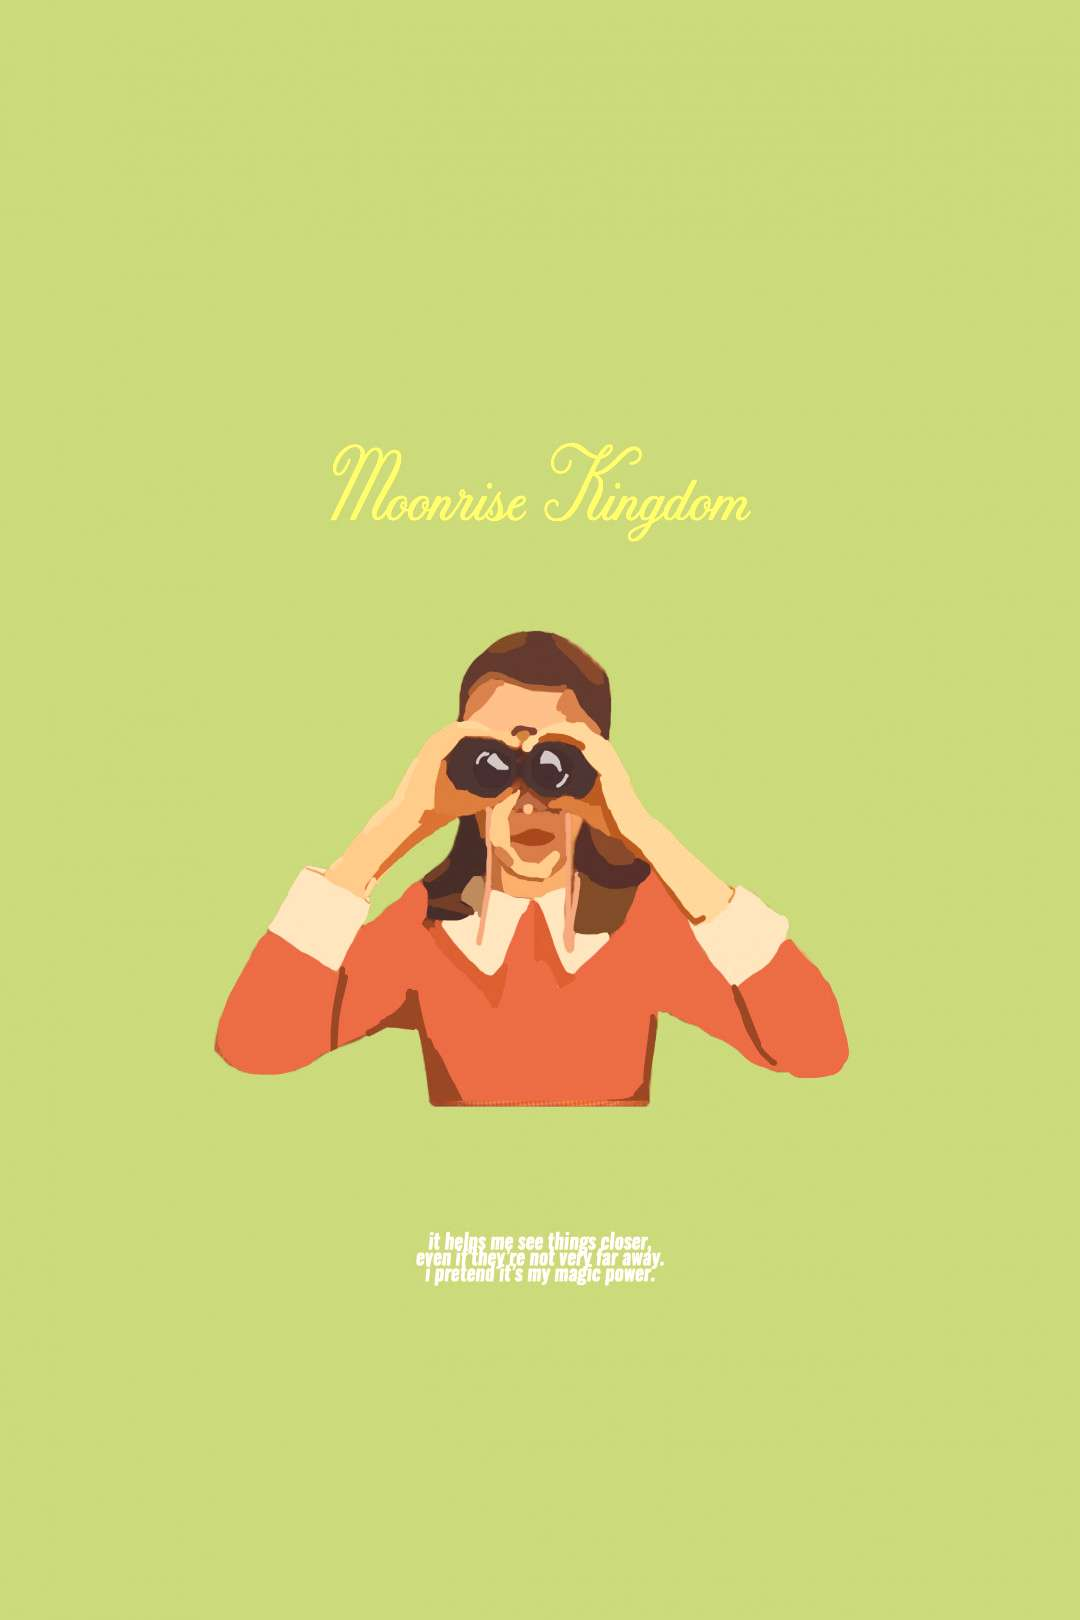 moonrise kingdom poster ✨??♀️ made by yours truly so don't steal it ?